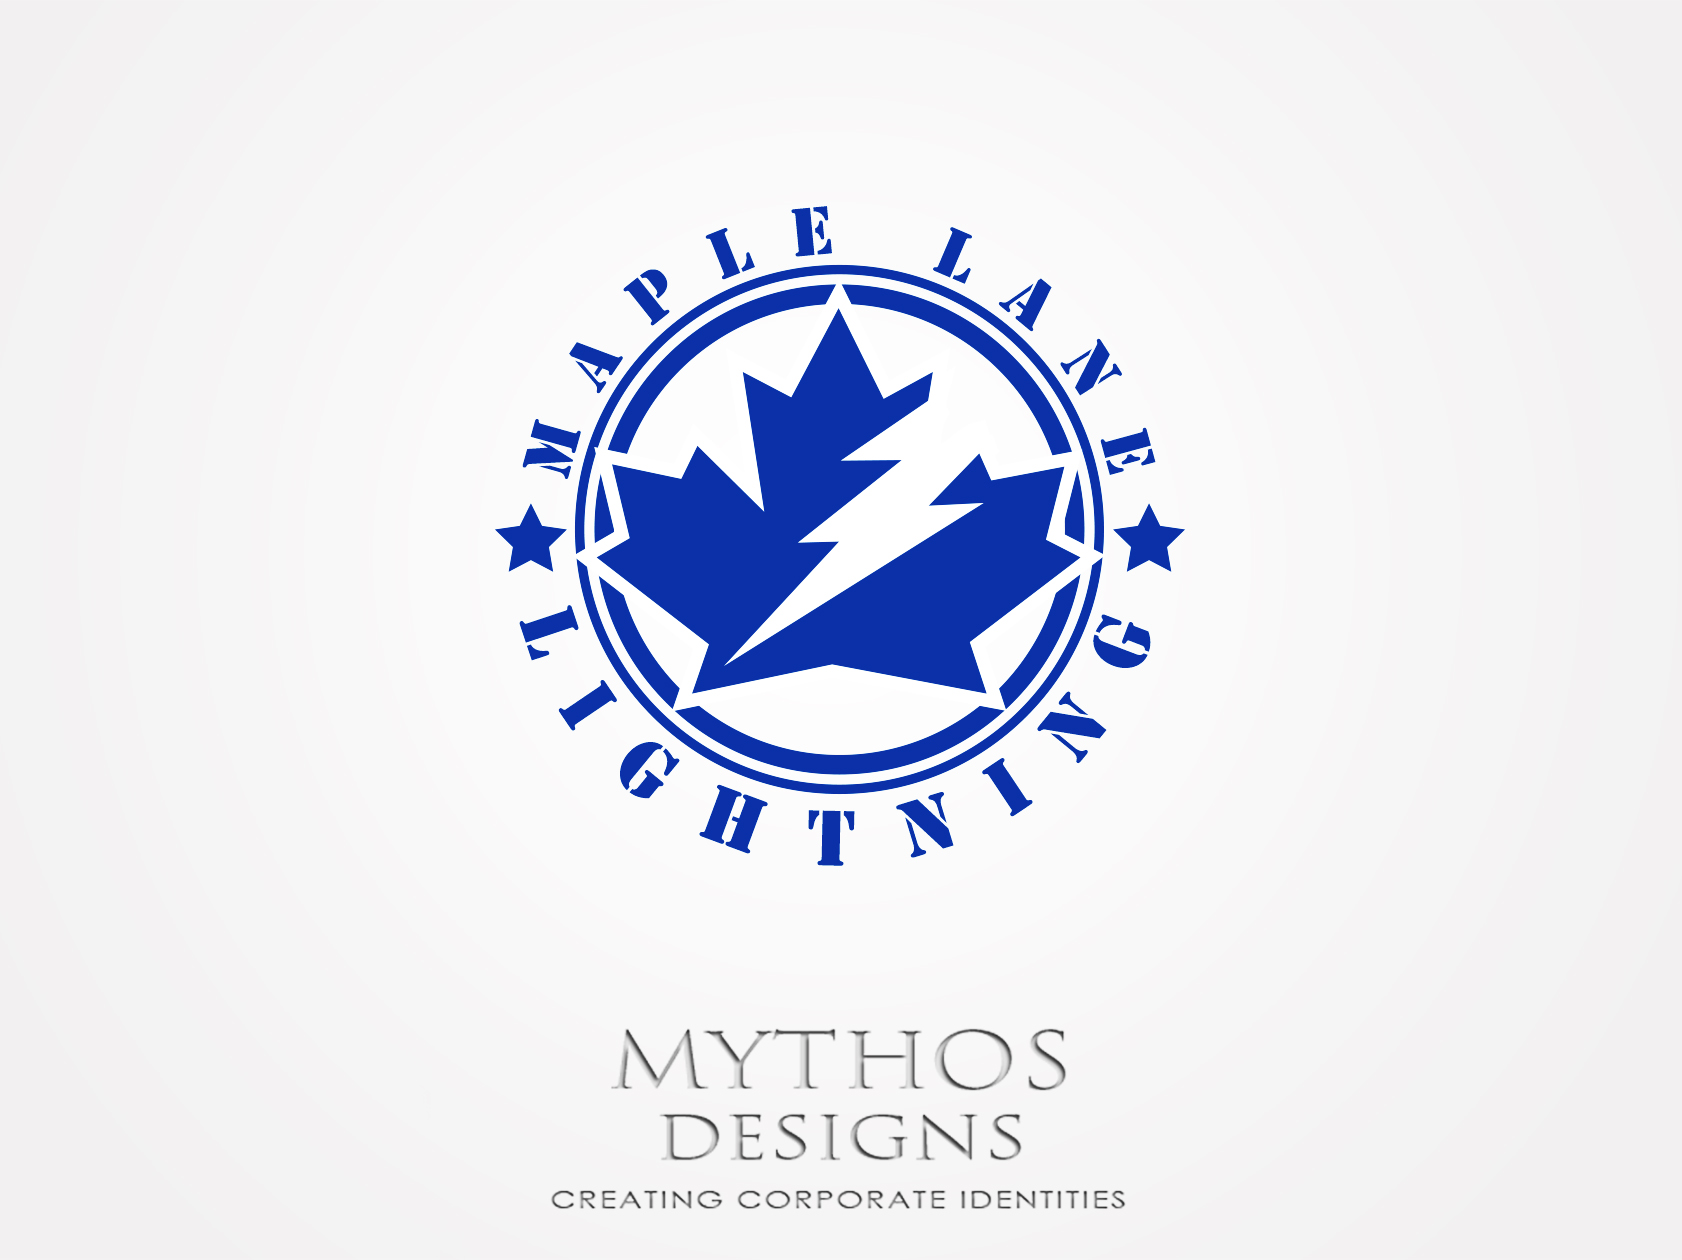 Logo Design by Mythos Designs - Entry No. 86 in the Logo Design Contest Maple Lane Logo Design.